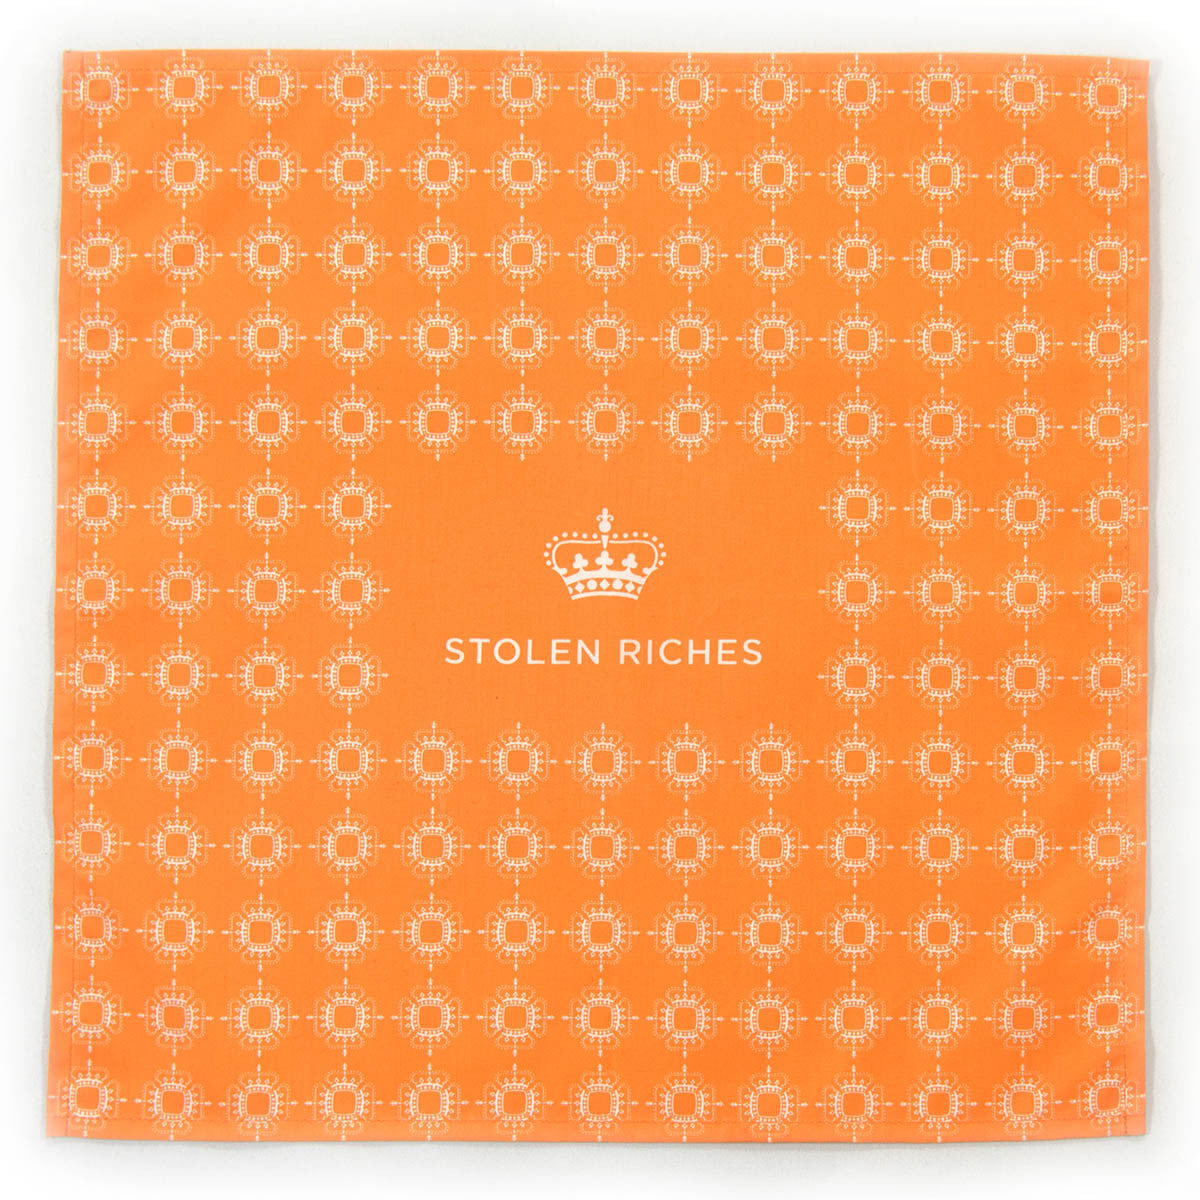 "Tiqui Orange - Crown Pattern Pocket Square (13""x13"") - Stolen Riches / CA"